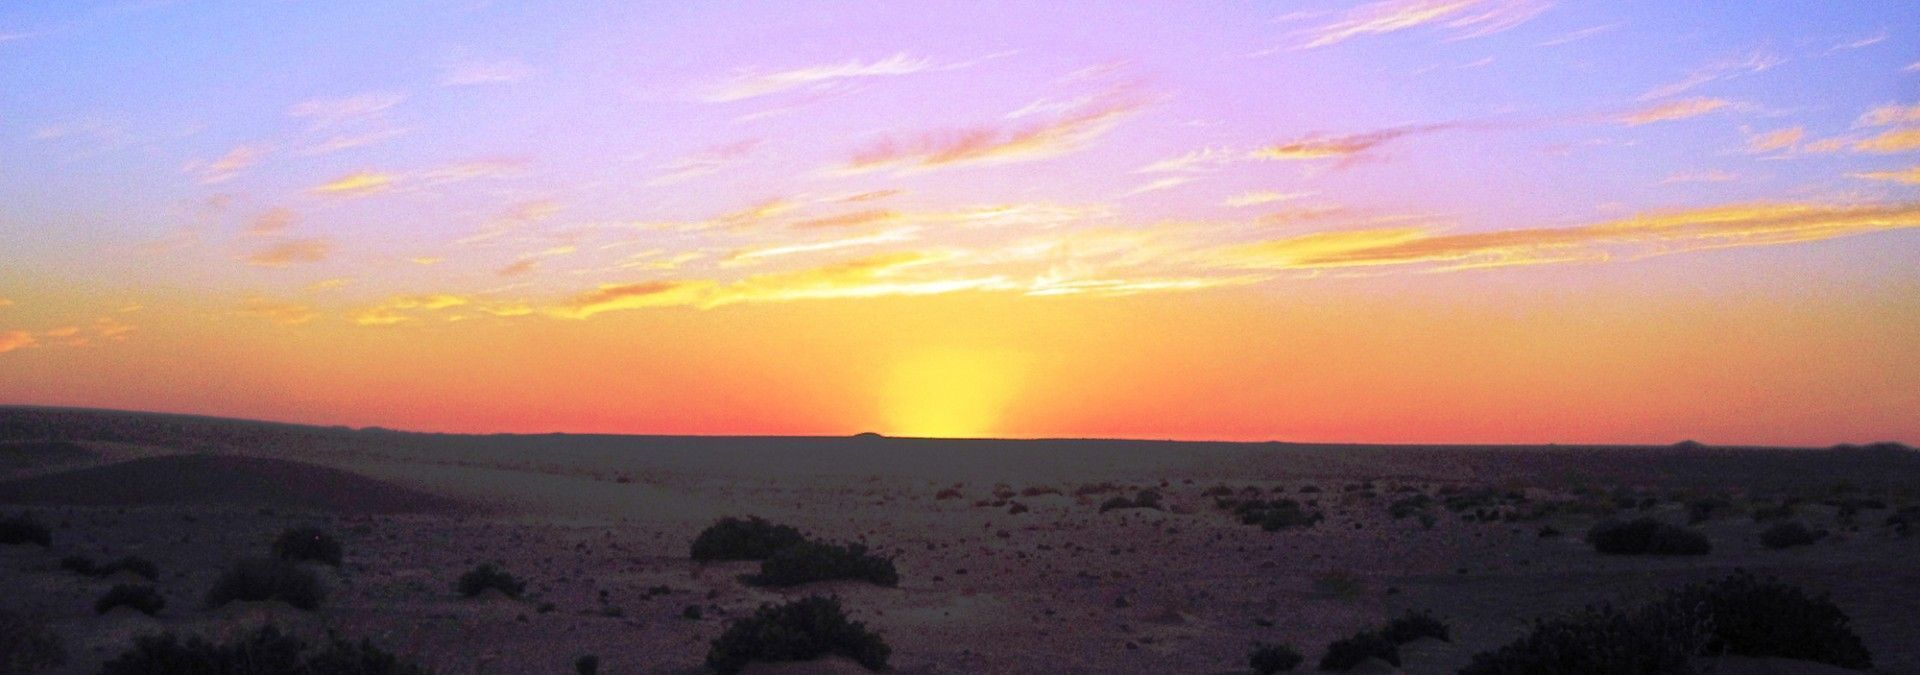 Sunrise_in_the_Sahara_Morocco.jpg